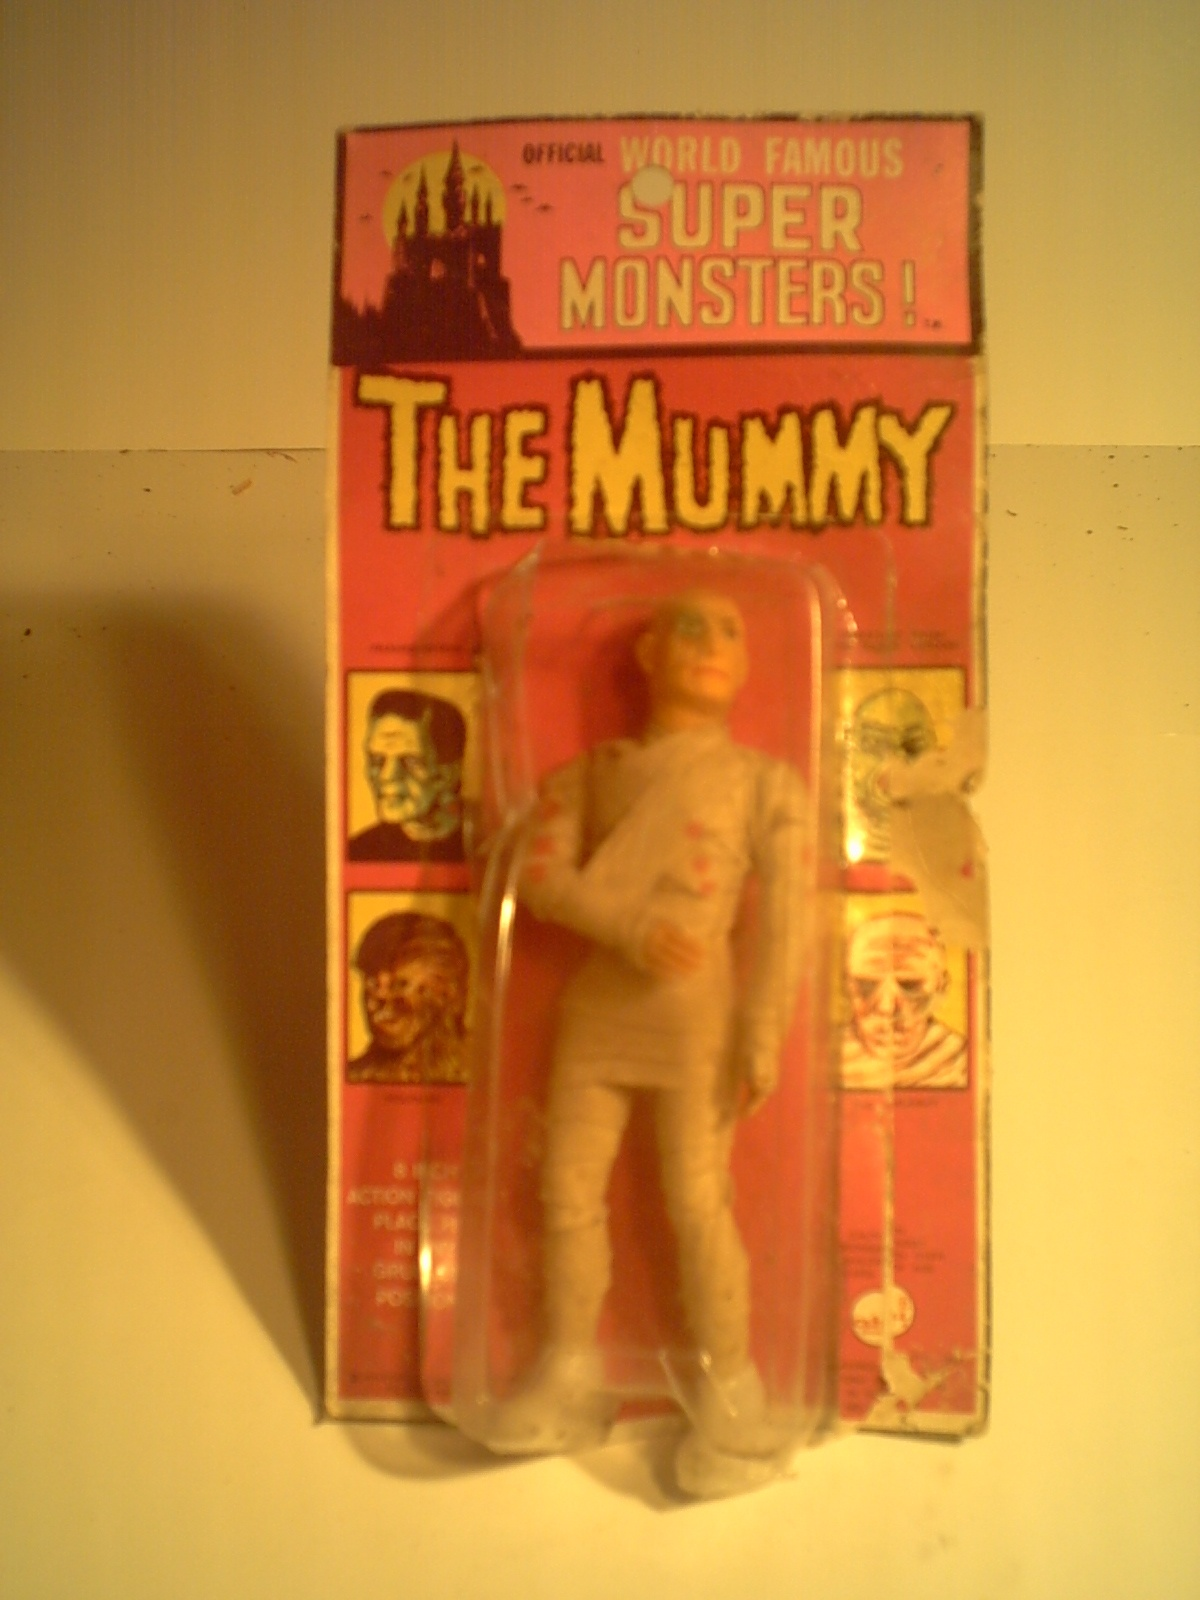 CLASSIC HORROR & MONSTER MOVIE COLLECTIBLES: # 1 POSEABLE ...